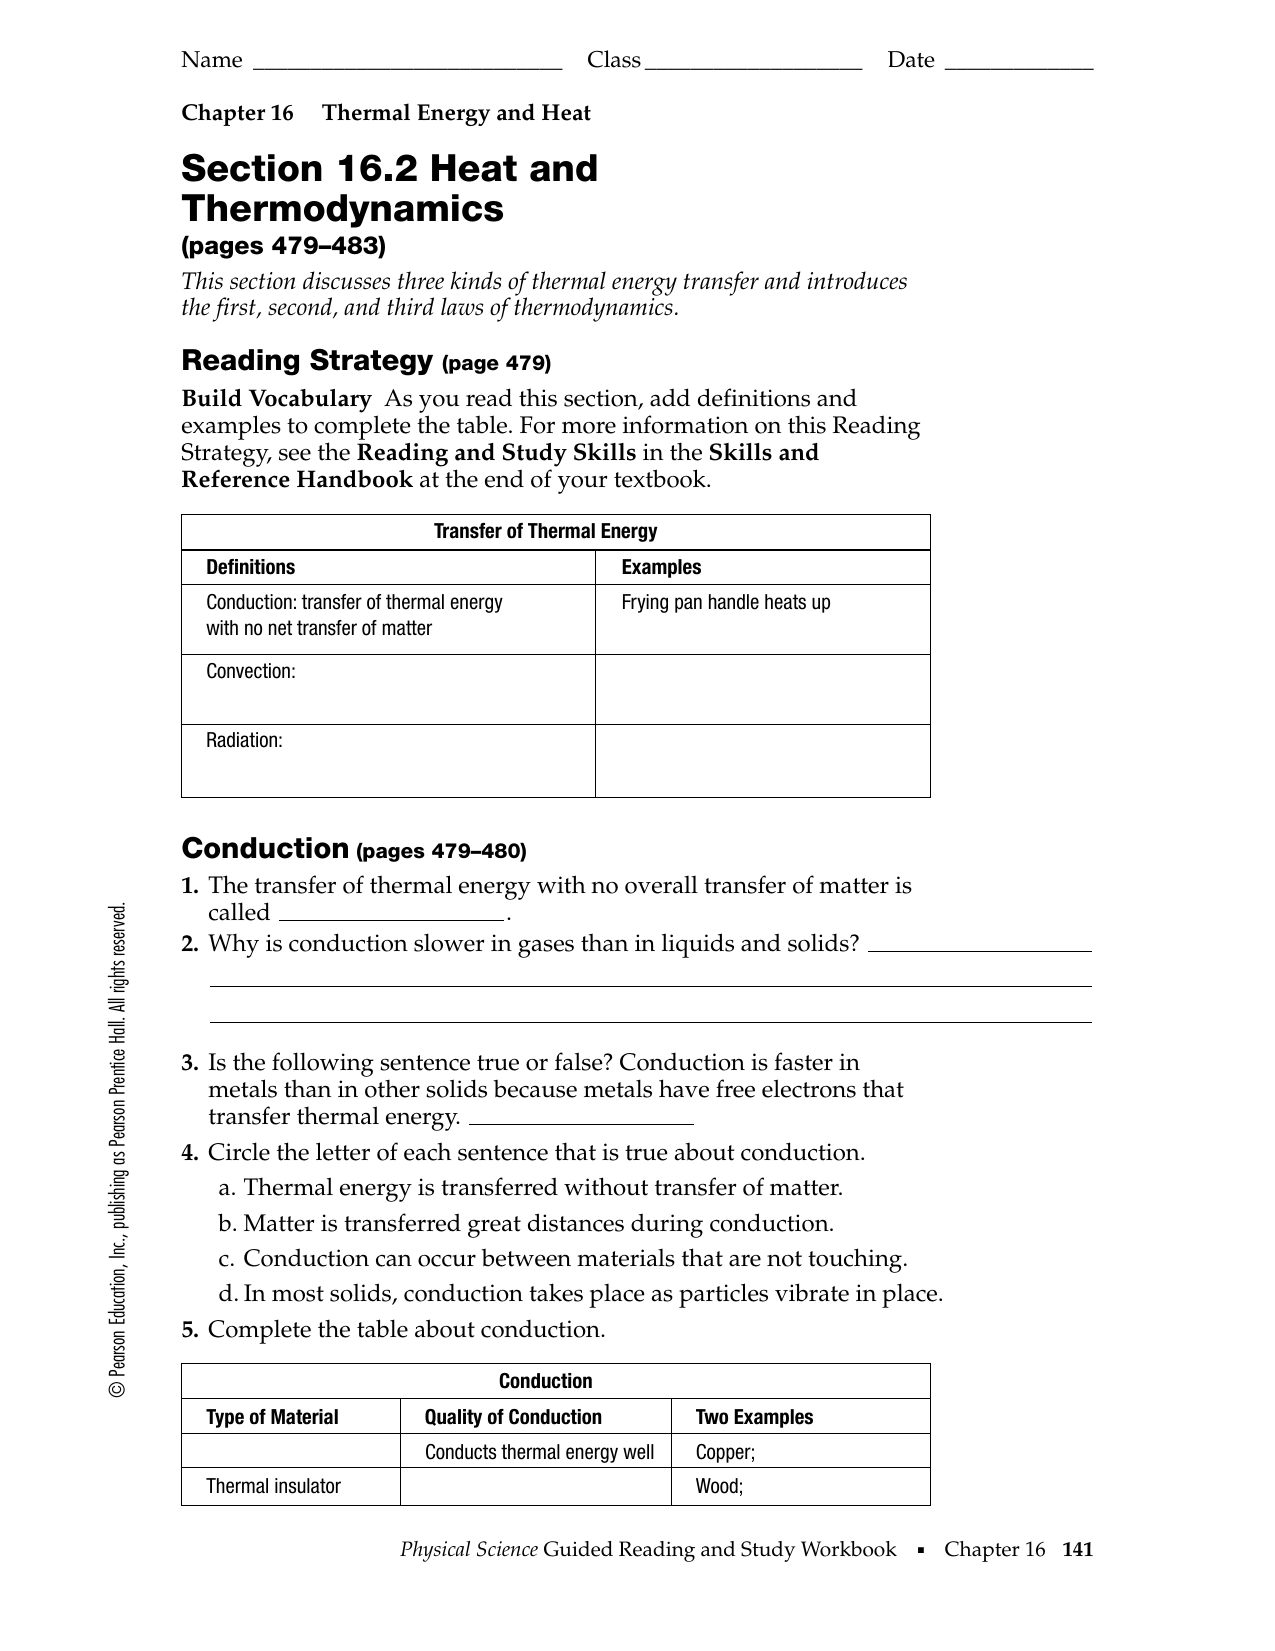 Section 16 2 Heat And Thermodynamics Worksheet Answer Key